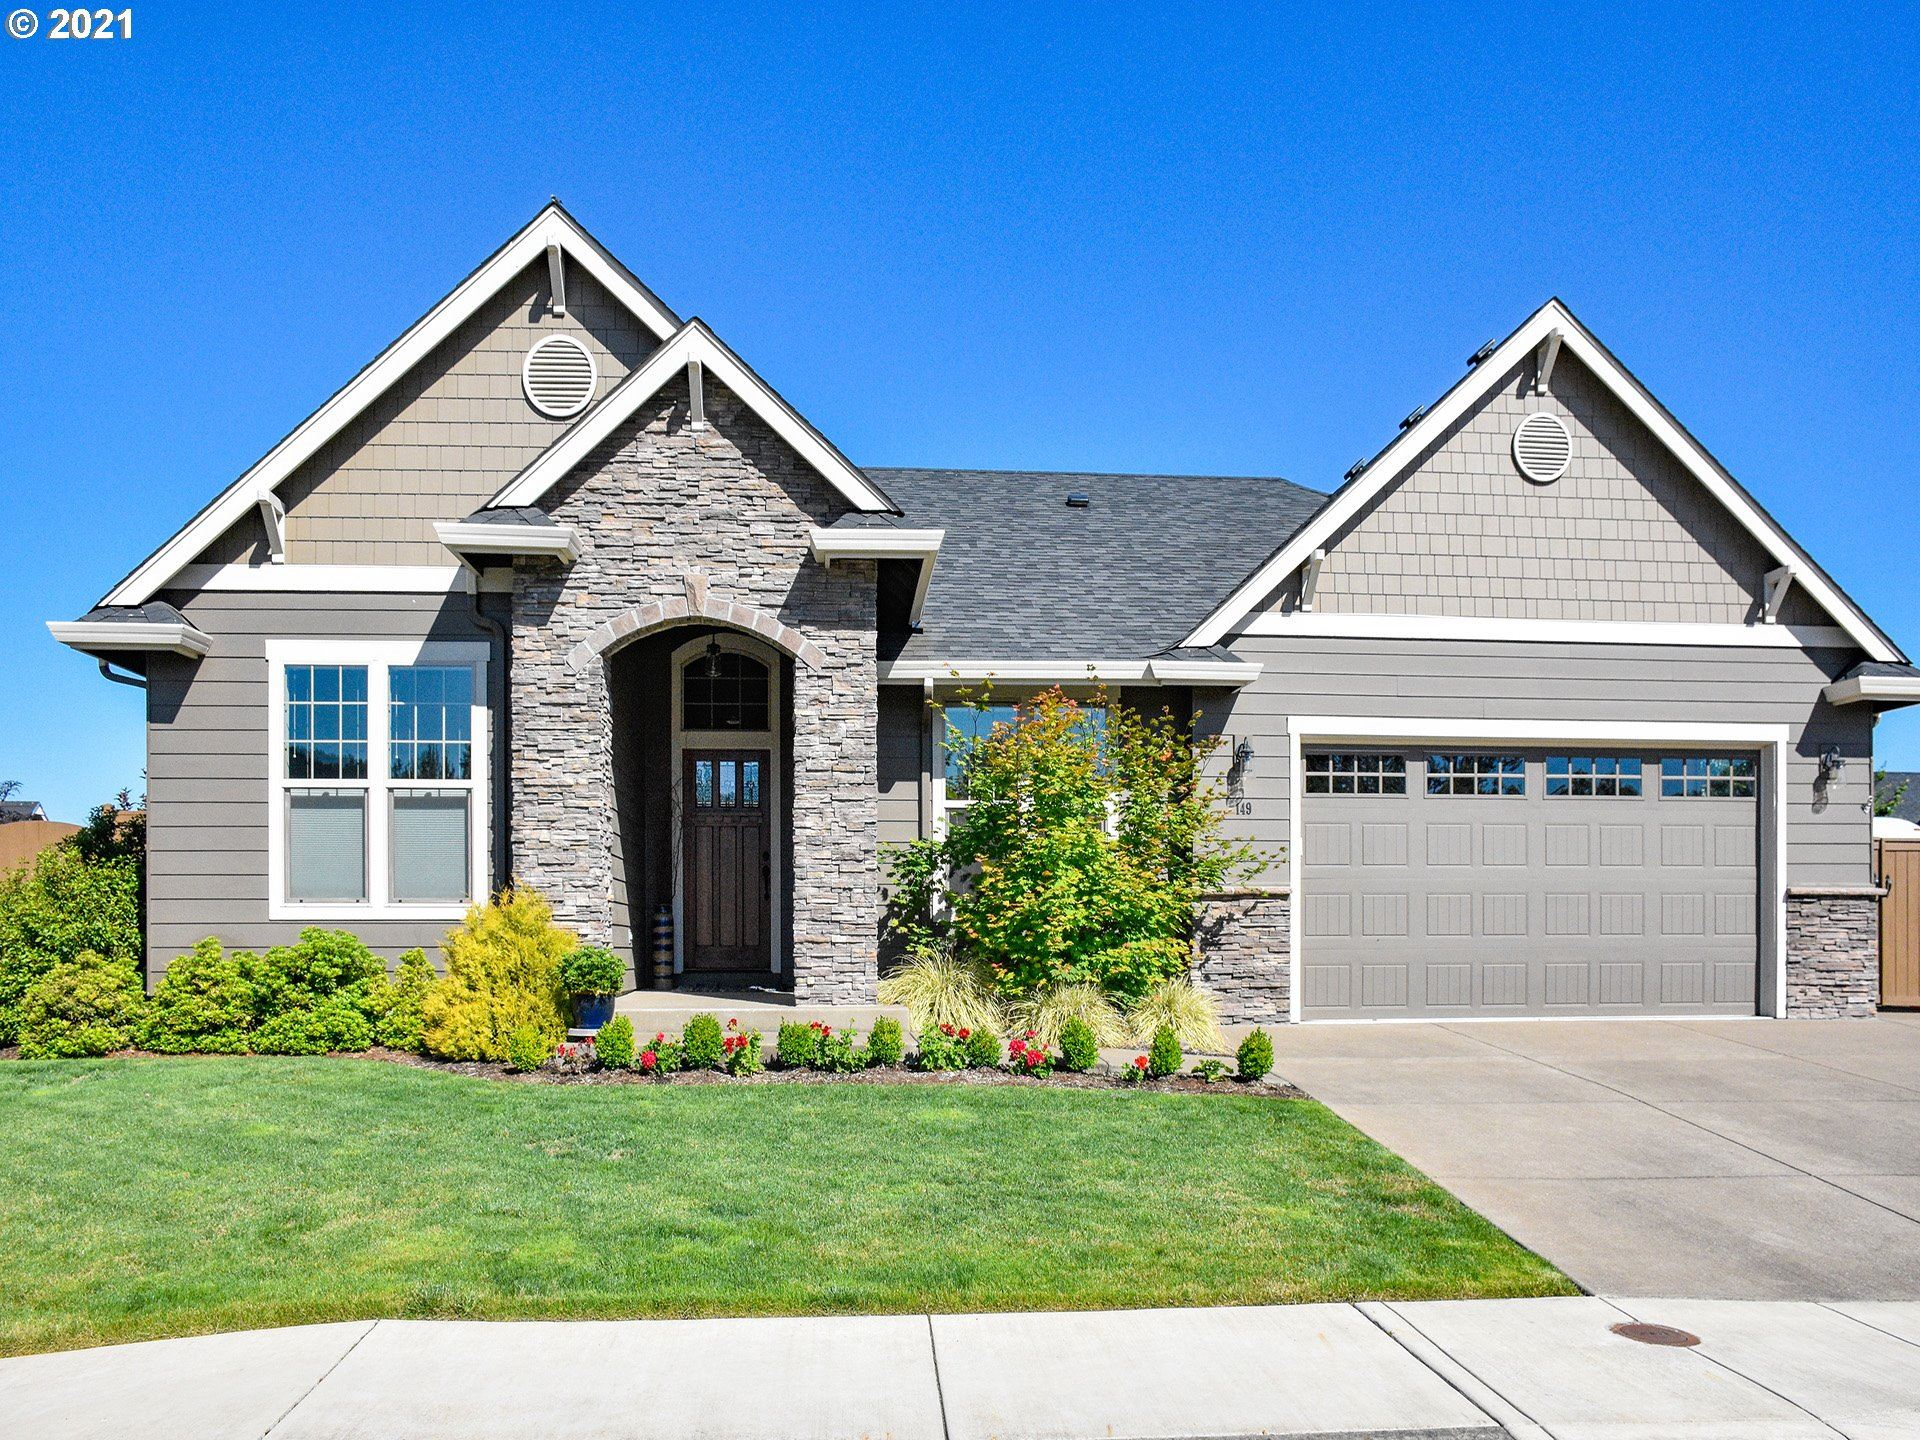 Photo for 149 BOBBY JONES AVE, Creswell, OR 97426 (MLS # 21610198)